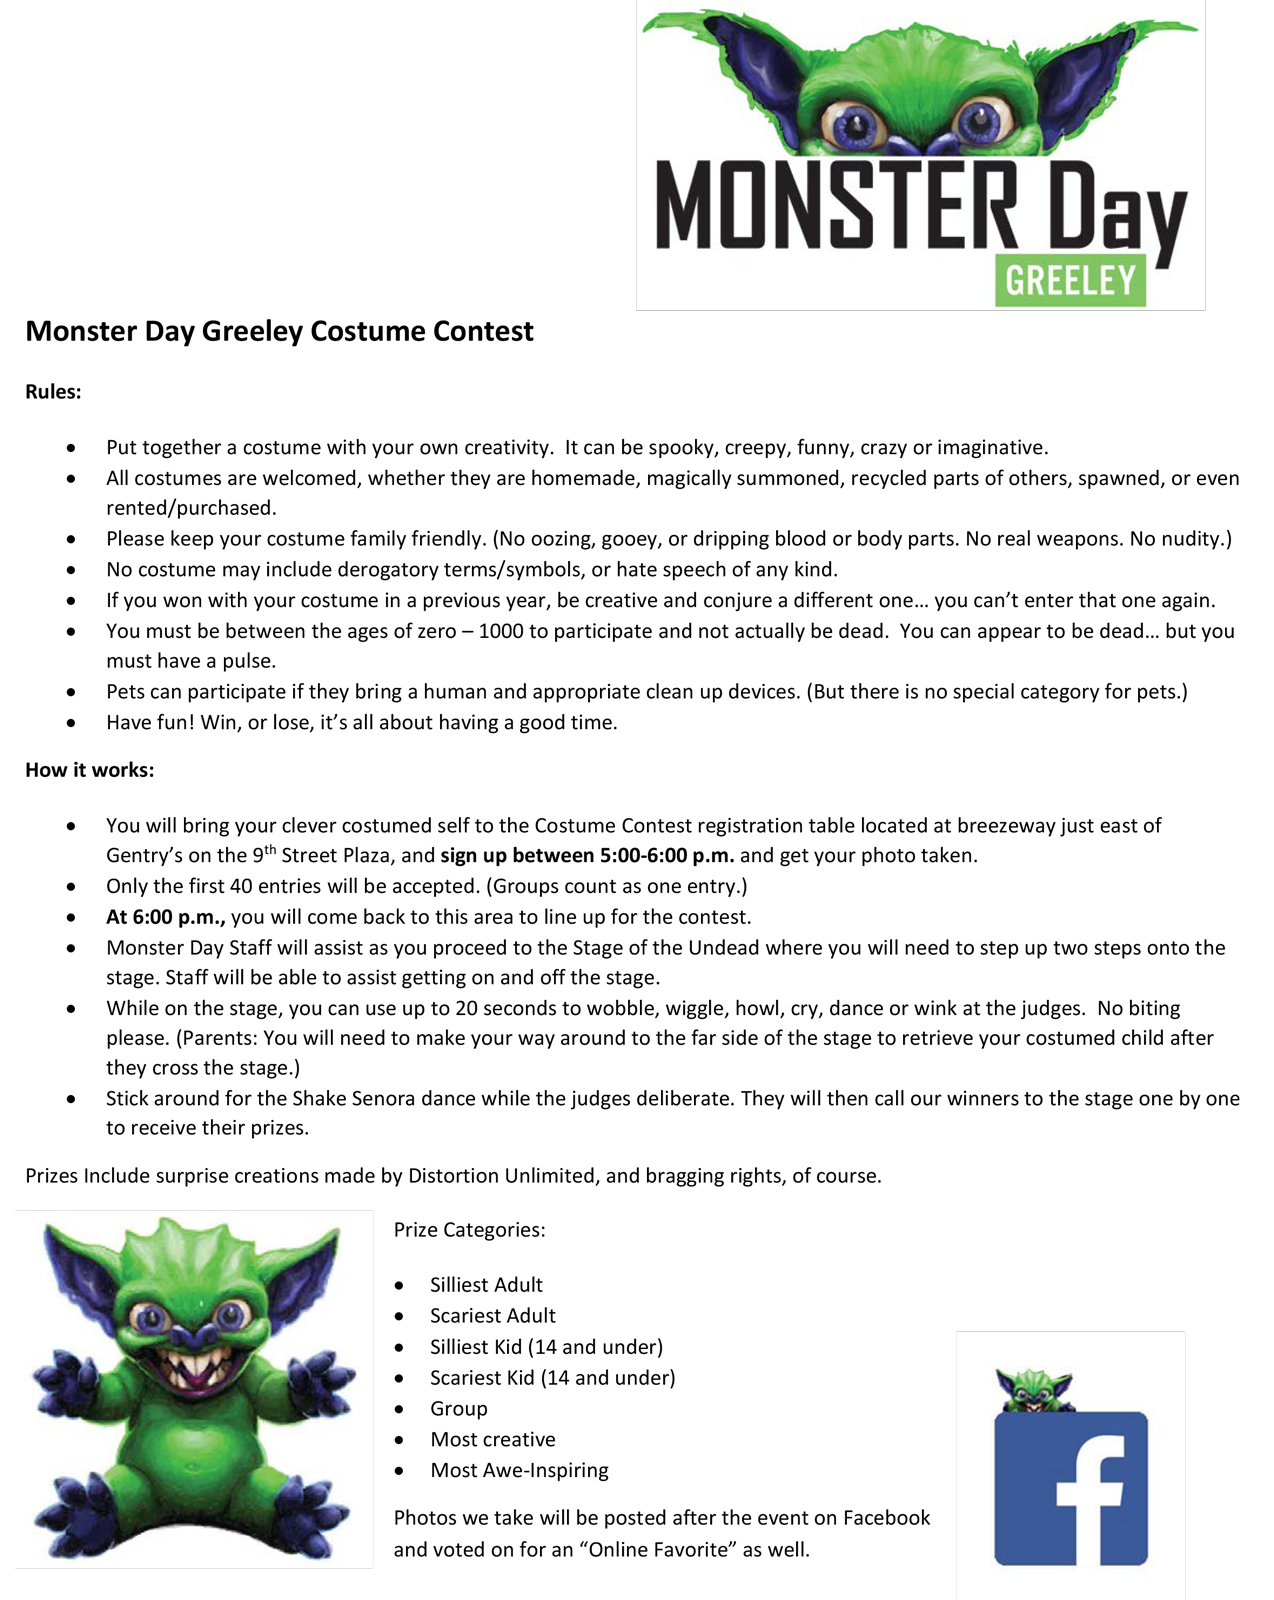 monster day greeley 2018 costume contest | monster day greeley